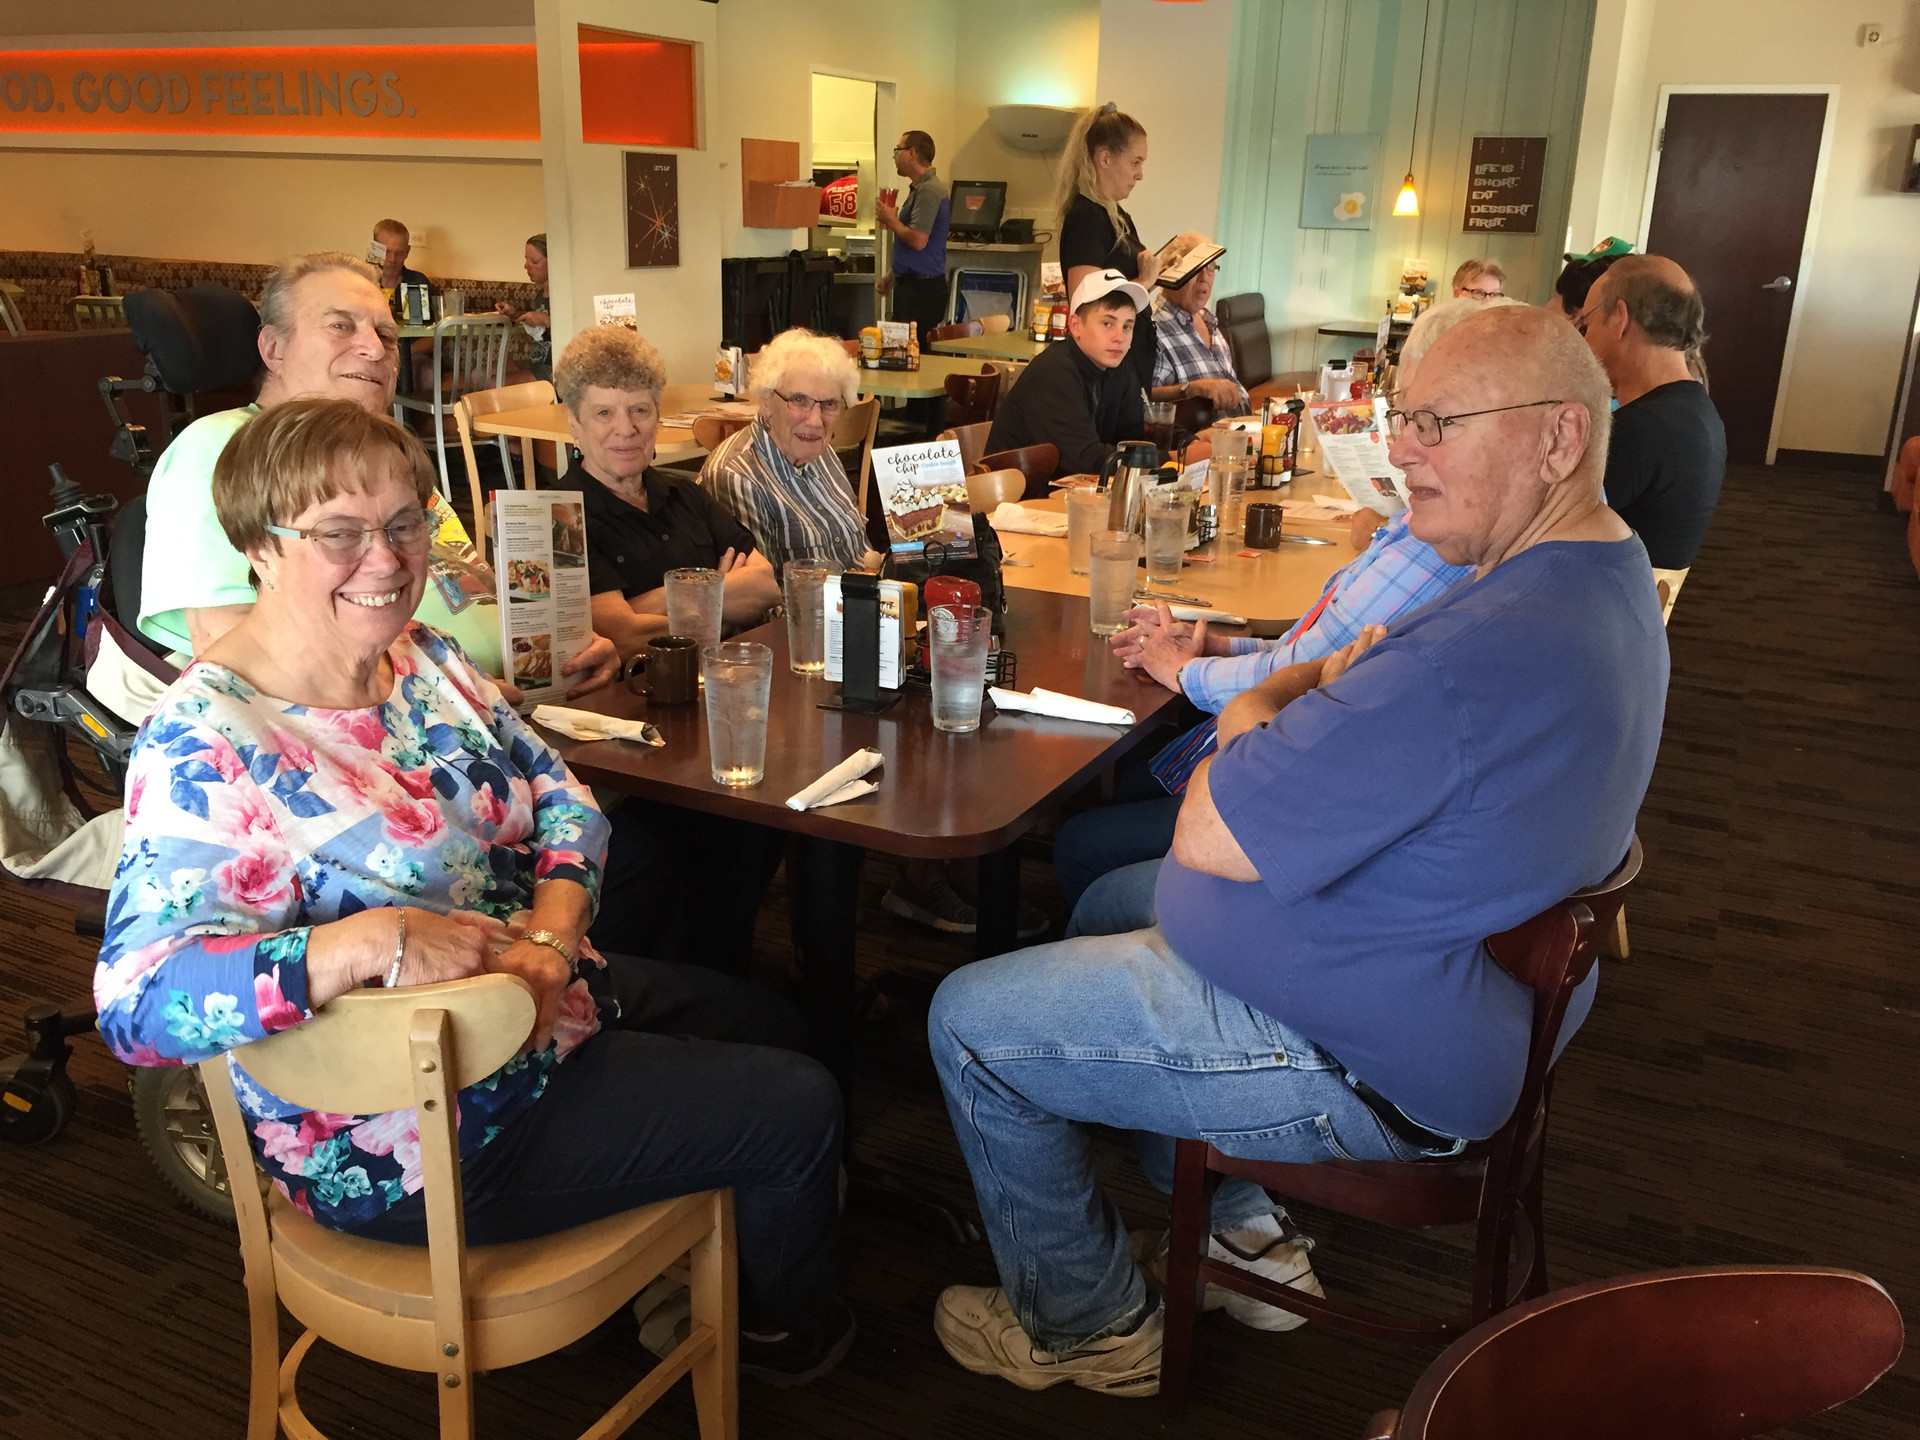 7.28.18 CCC Dining with Dorie at Village